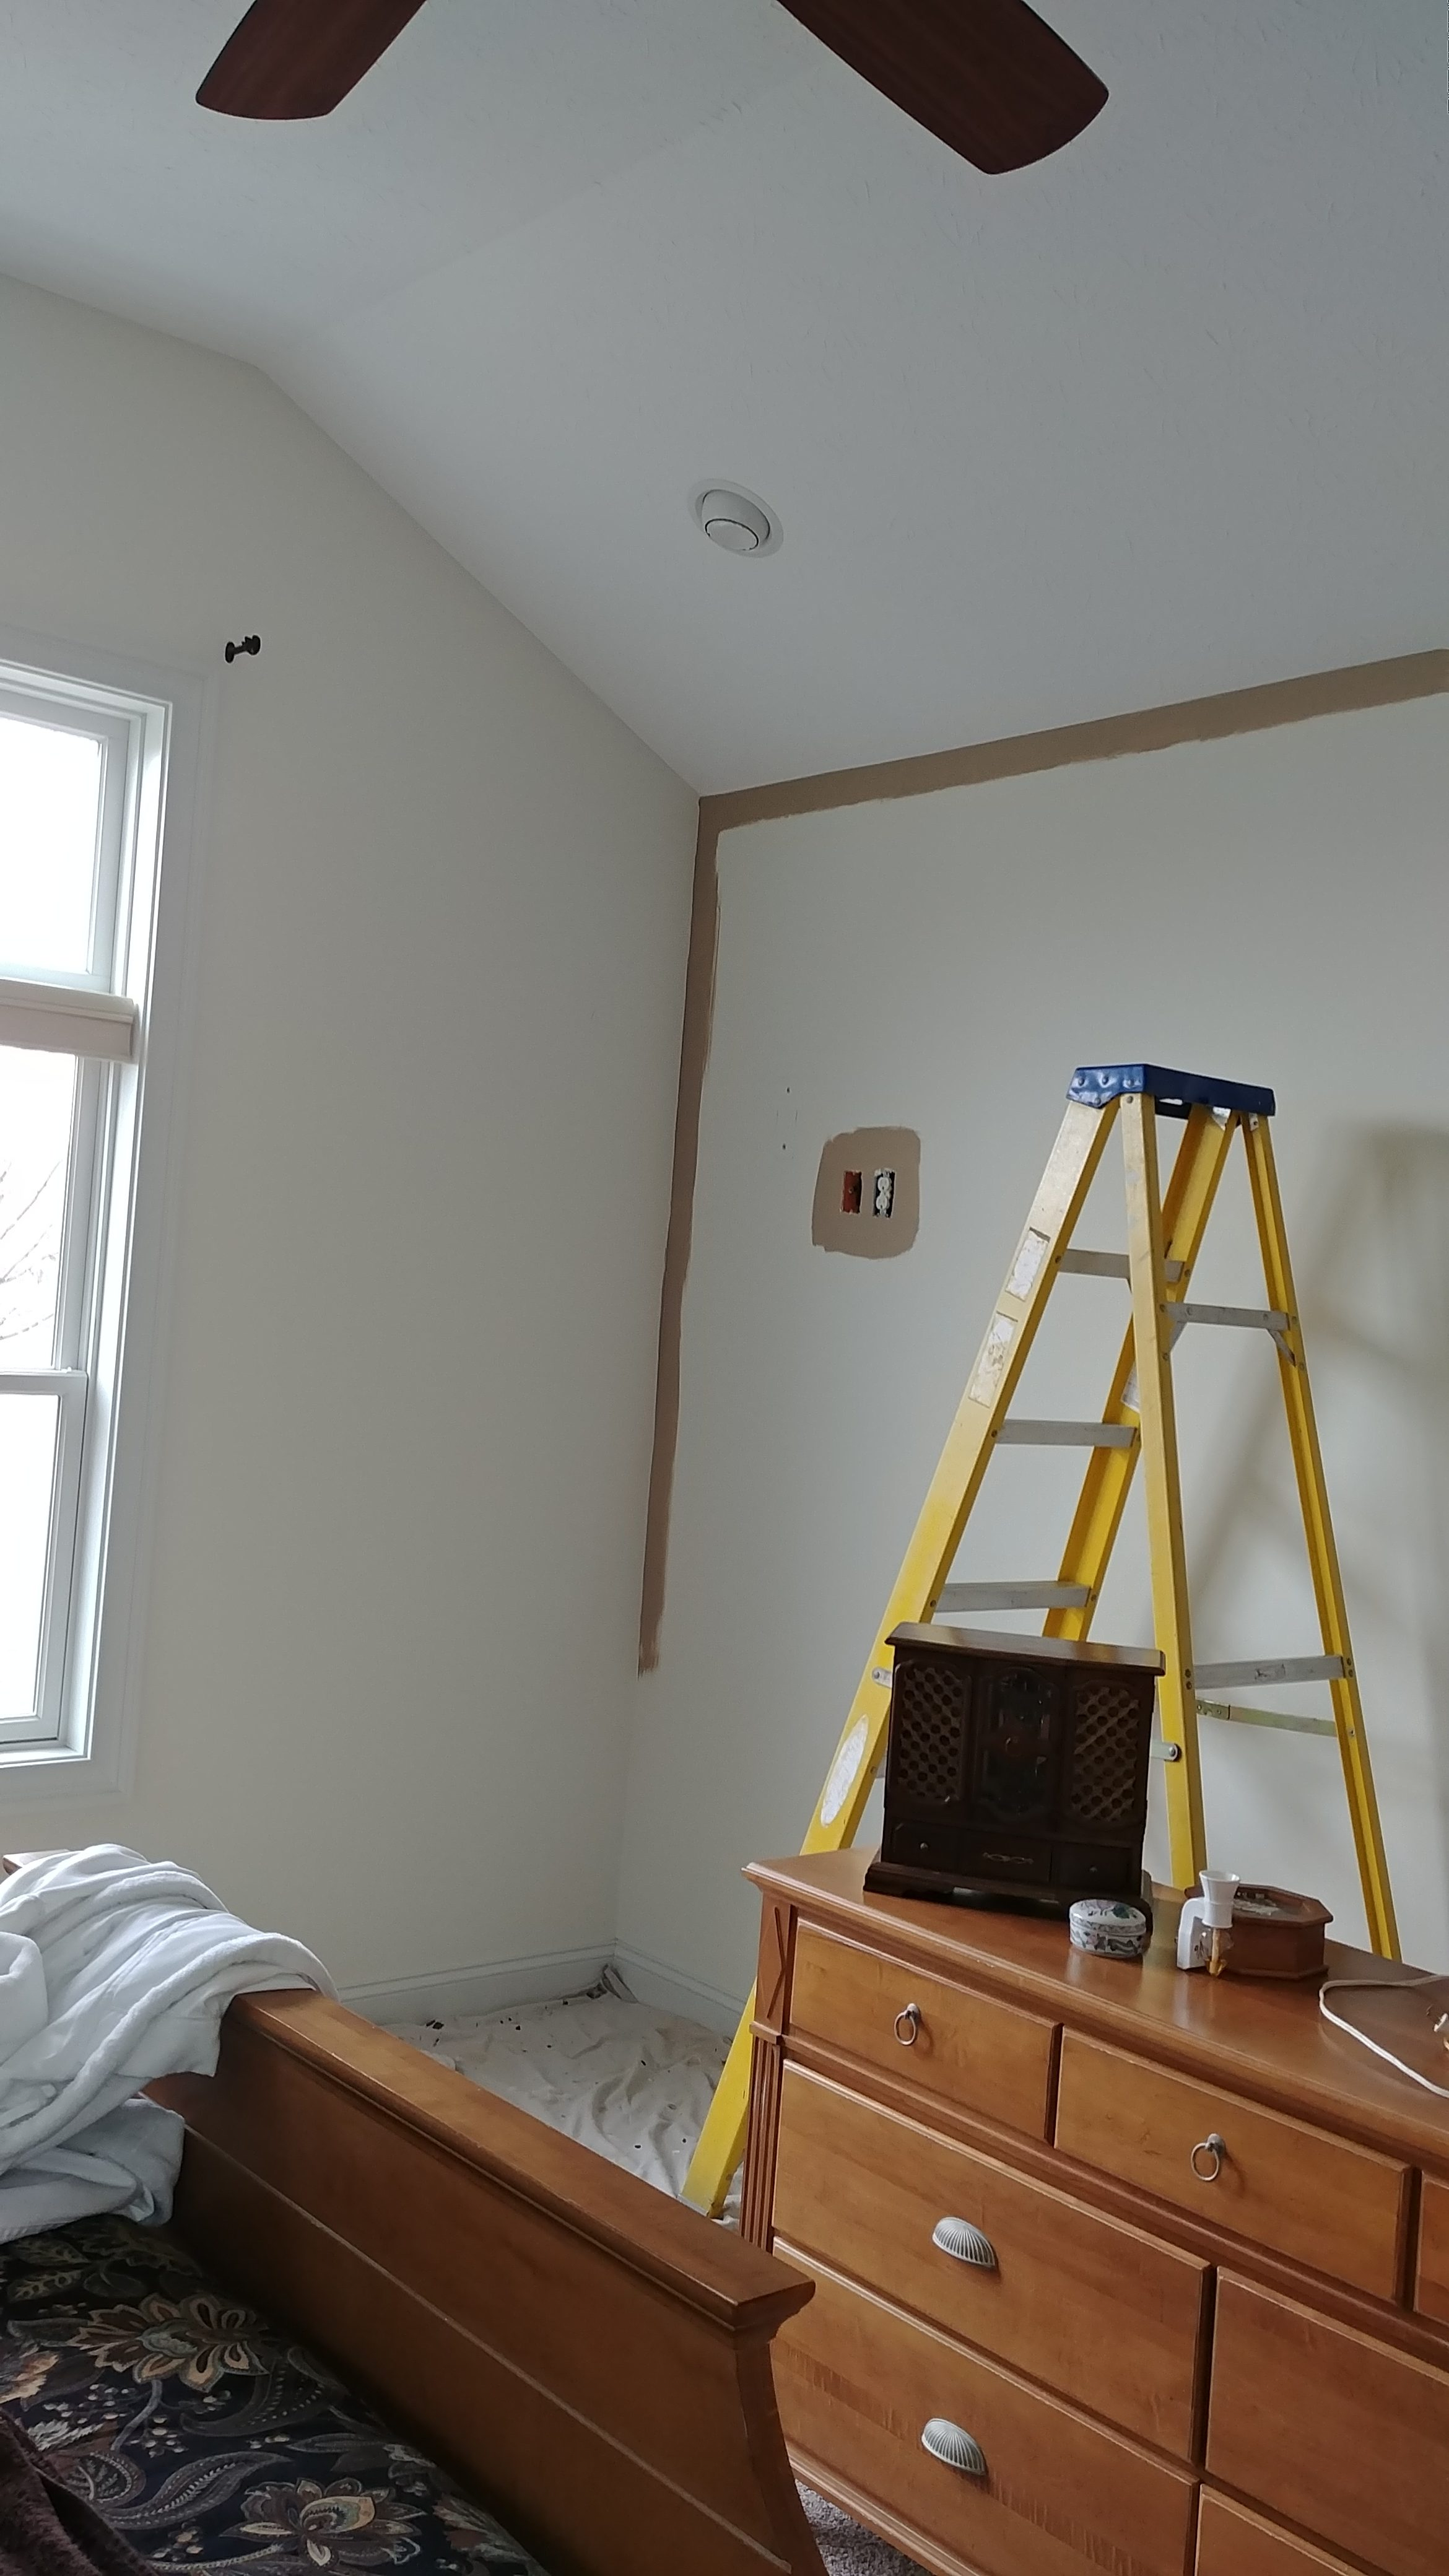 During - Interior Painting of a Bedroom in Eaton Township